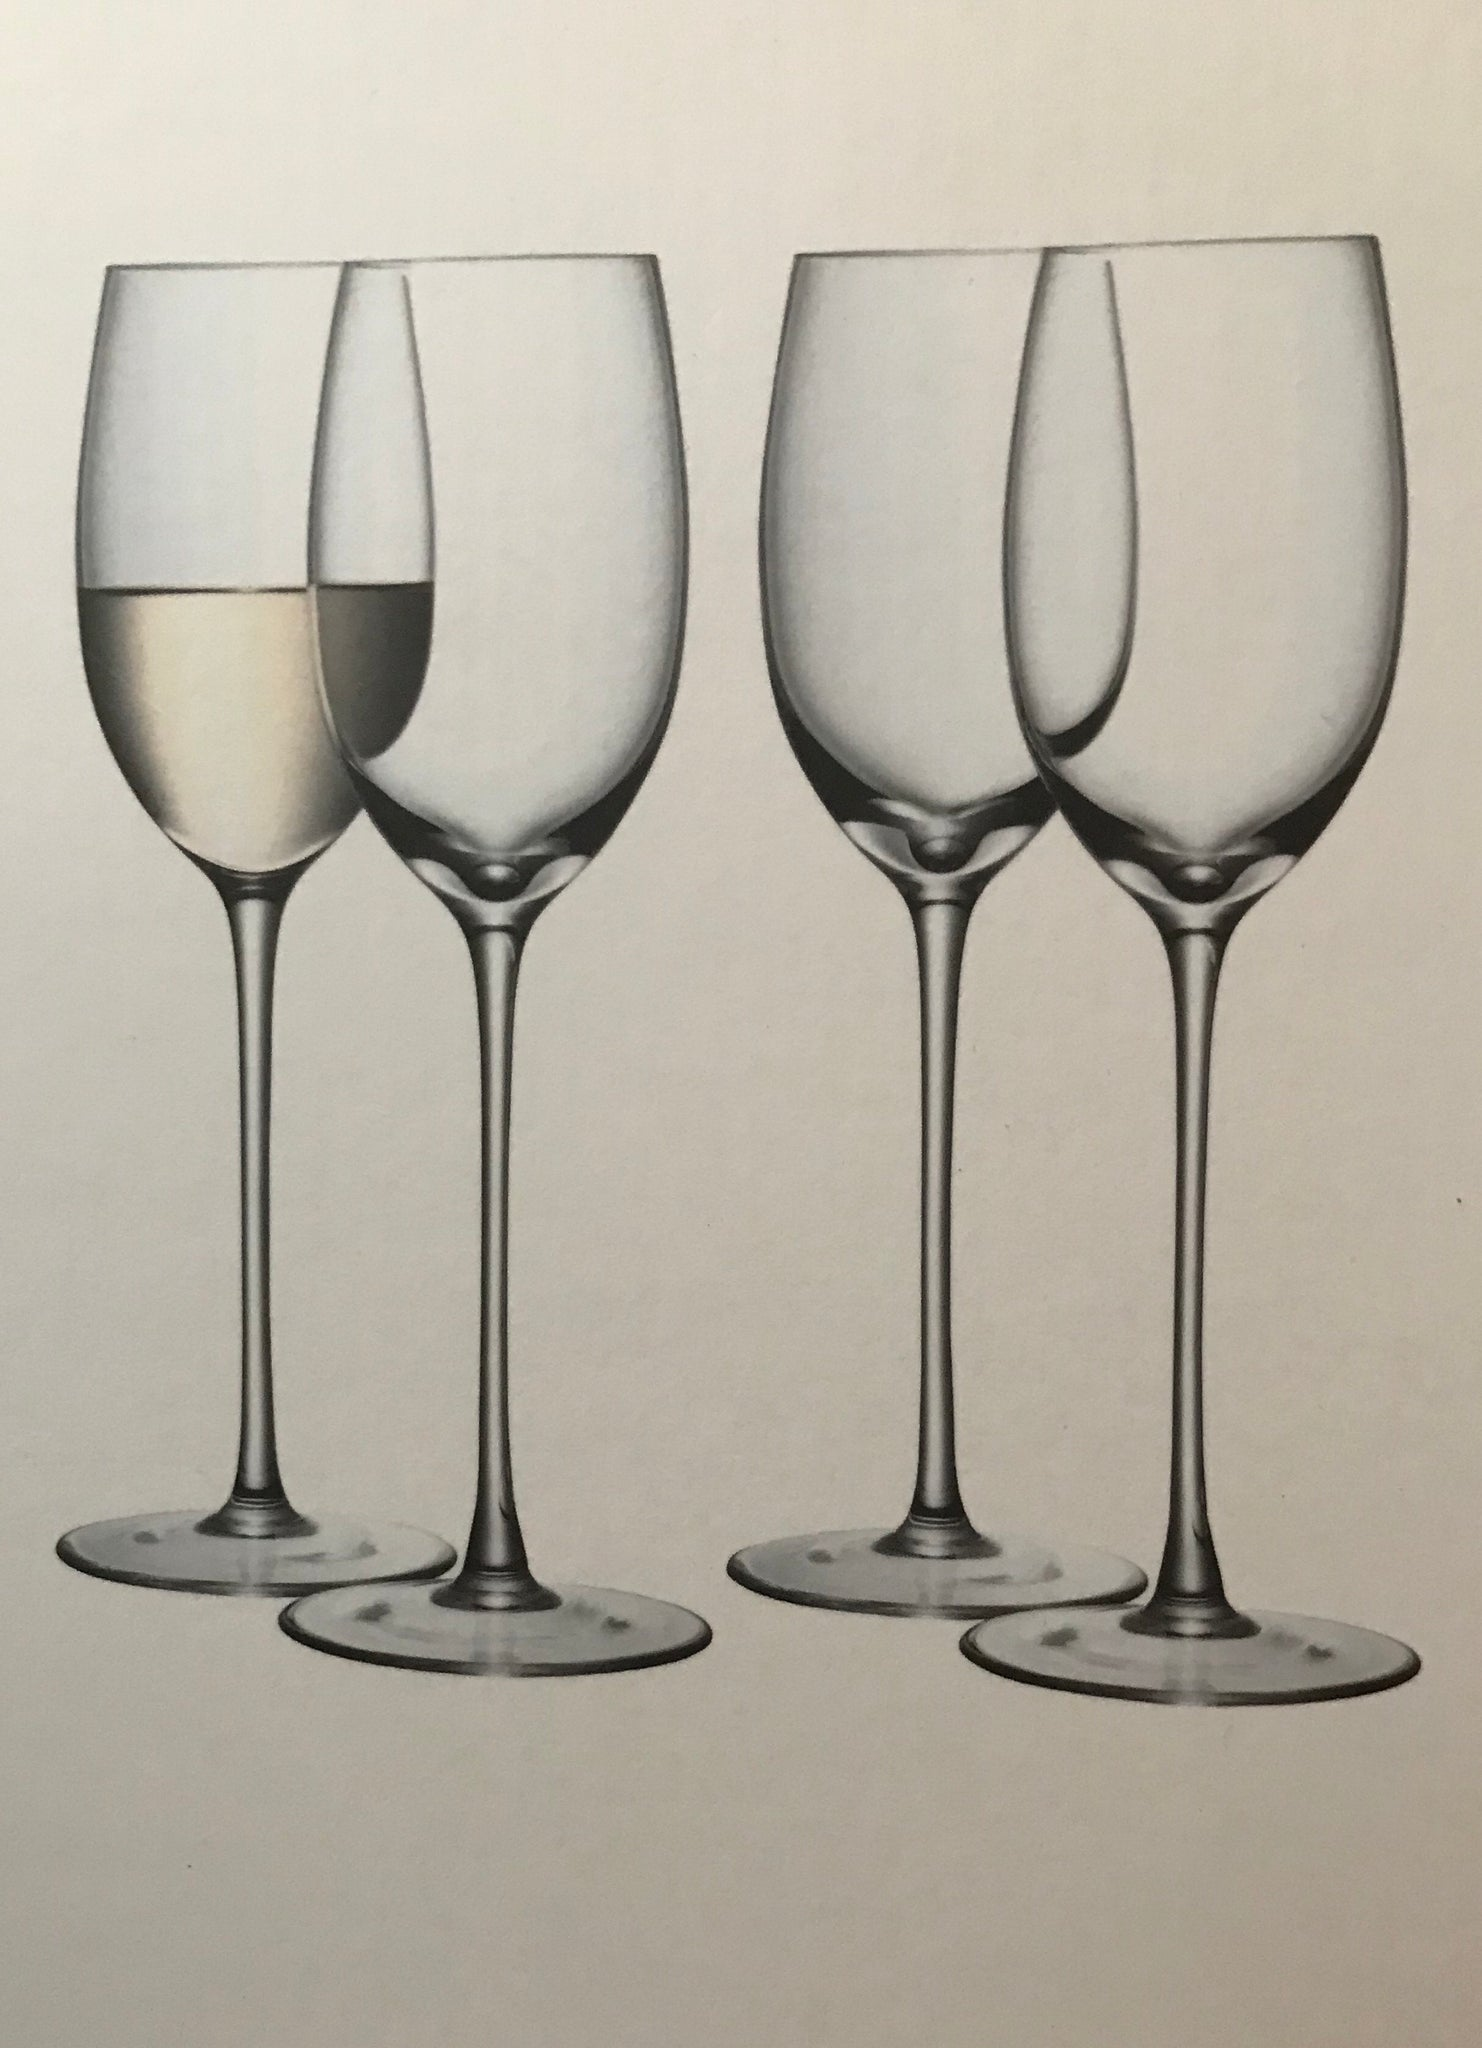 cadeauxwells - Set of 4 White Wine Glasses - 340ml - LSA - Glassware